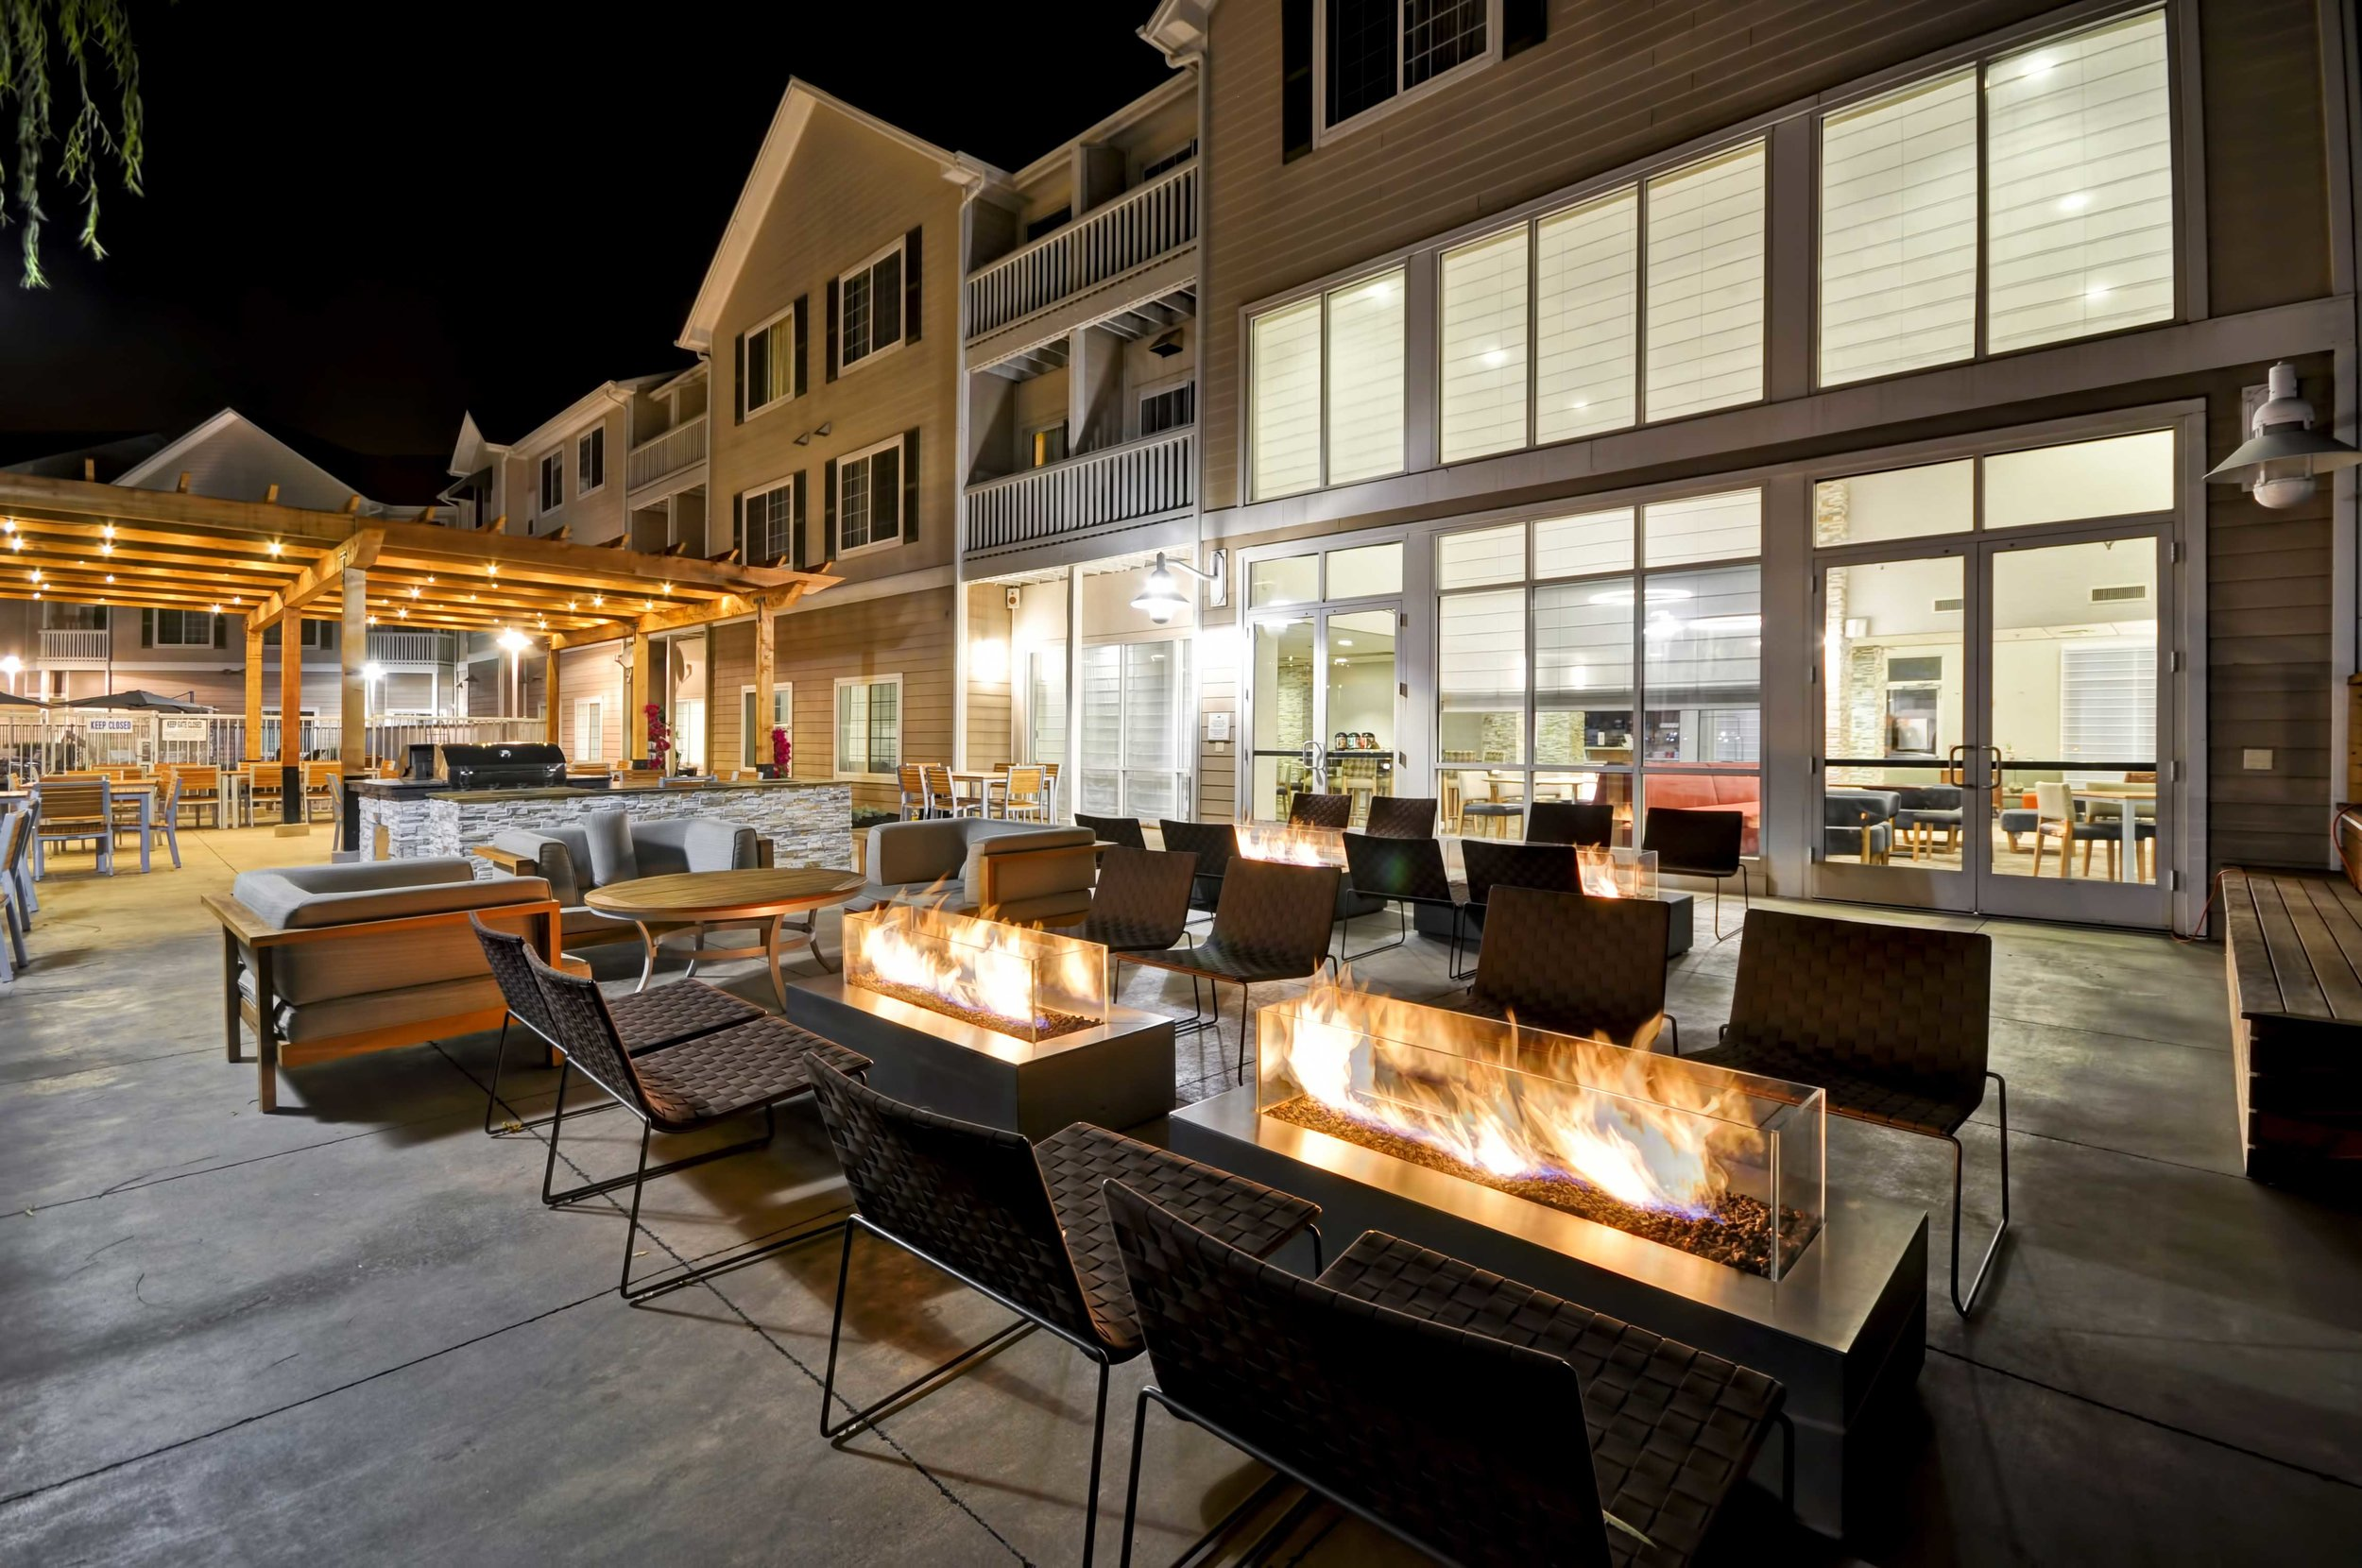 11-Homewood-Suites-Oakland-Patio---BBQ--Firepits-PM.jpg